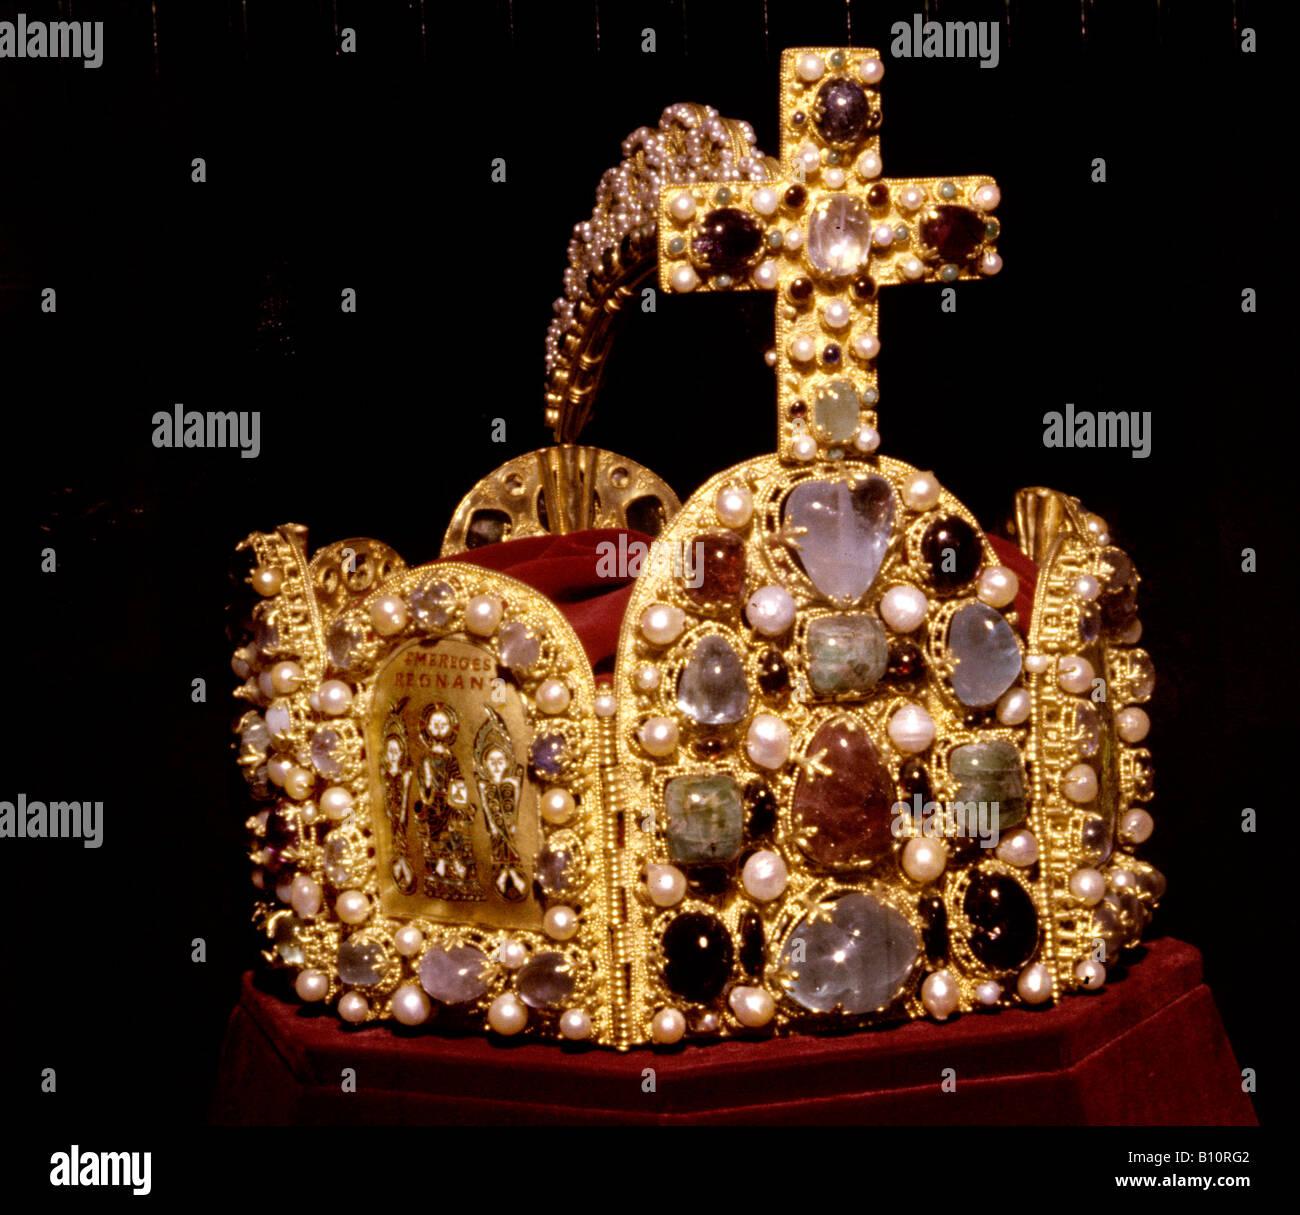 Crown of the Holy Roman Empire of Otto I 962 AD Germany  Copyright AAAC Ltd - Stock Image